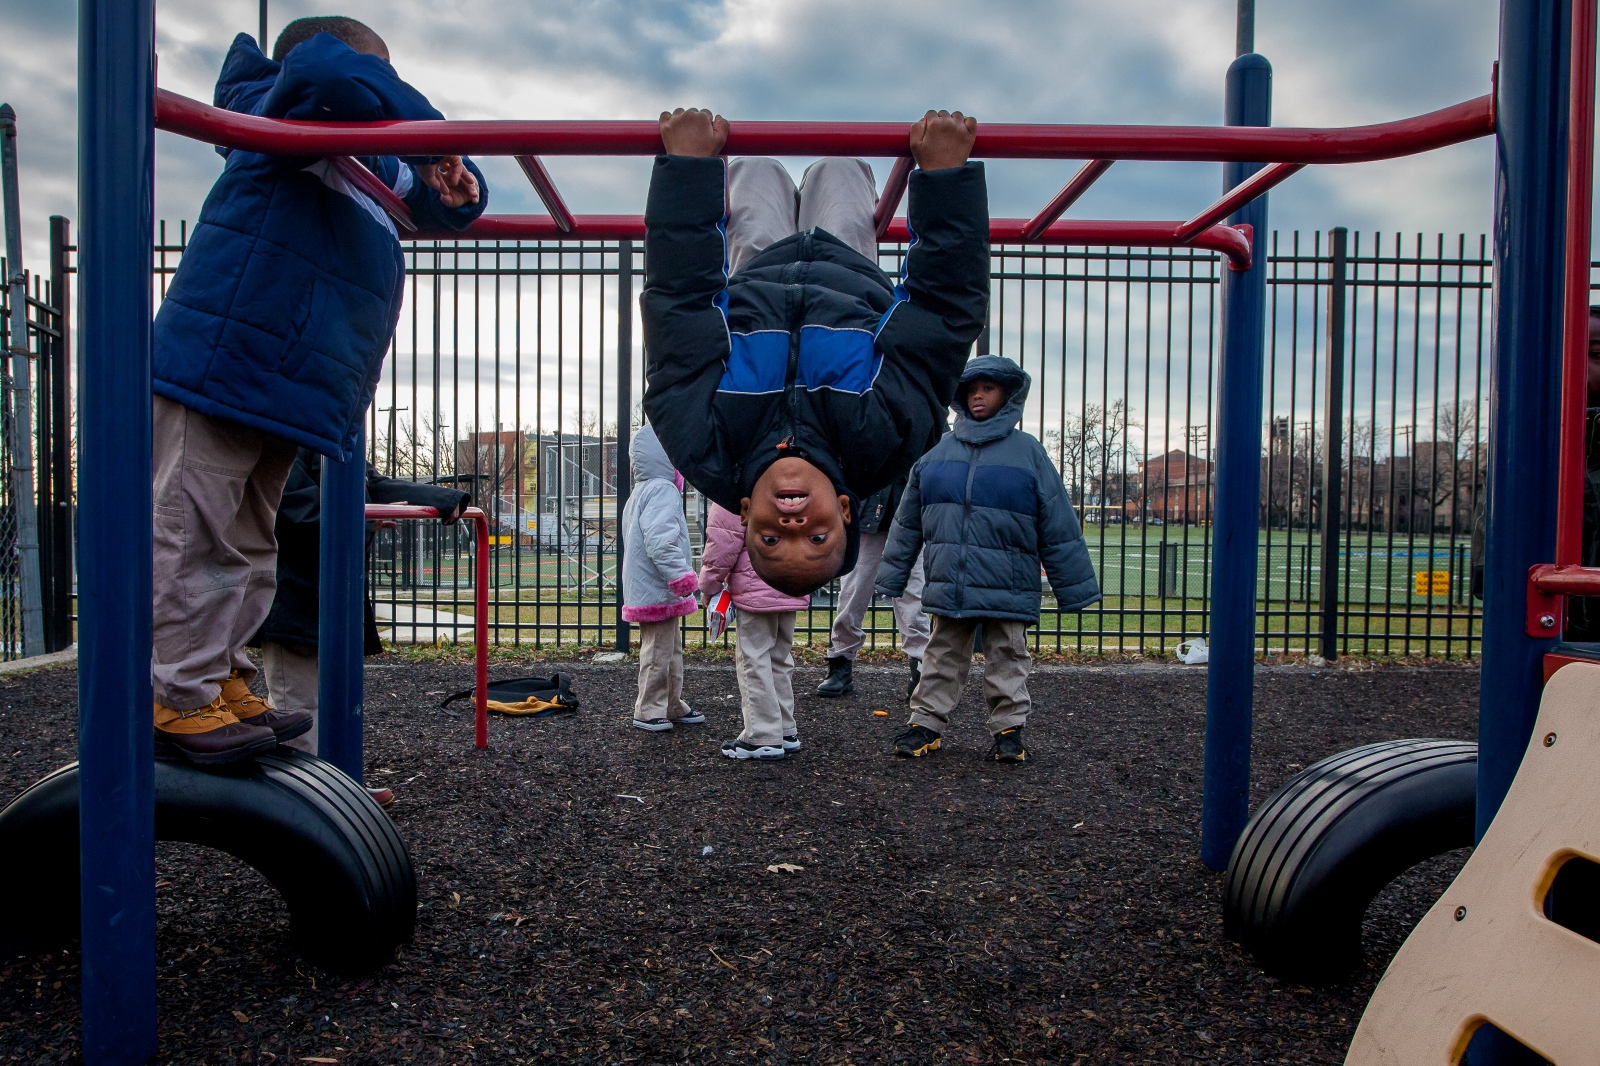 Students line up to flip off of the monkey bars during recess. Young kids in the Anacostia area are full of energy and athleticism.